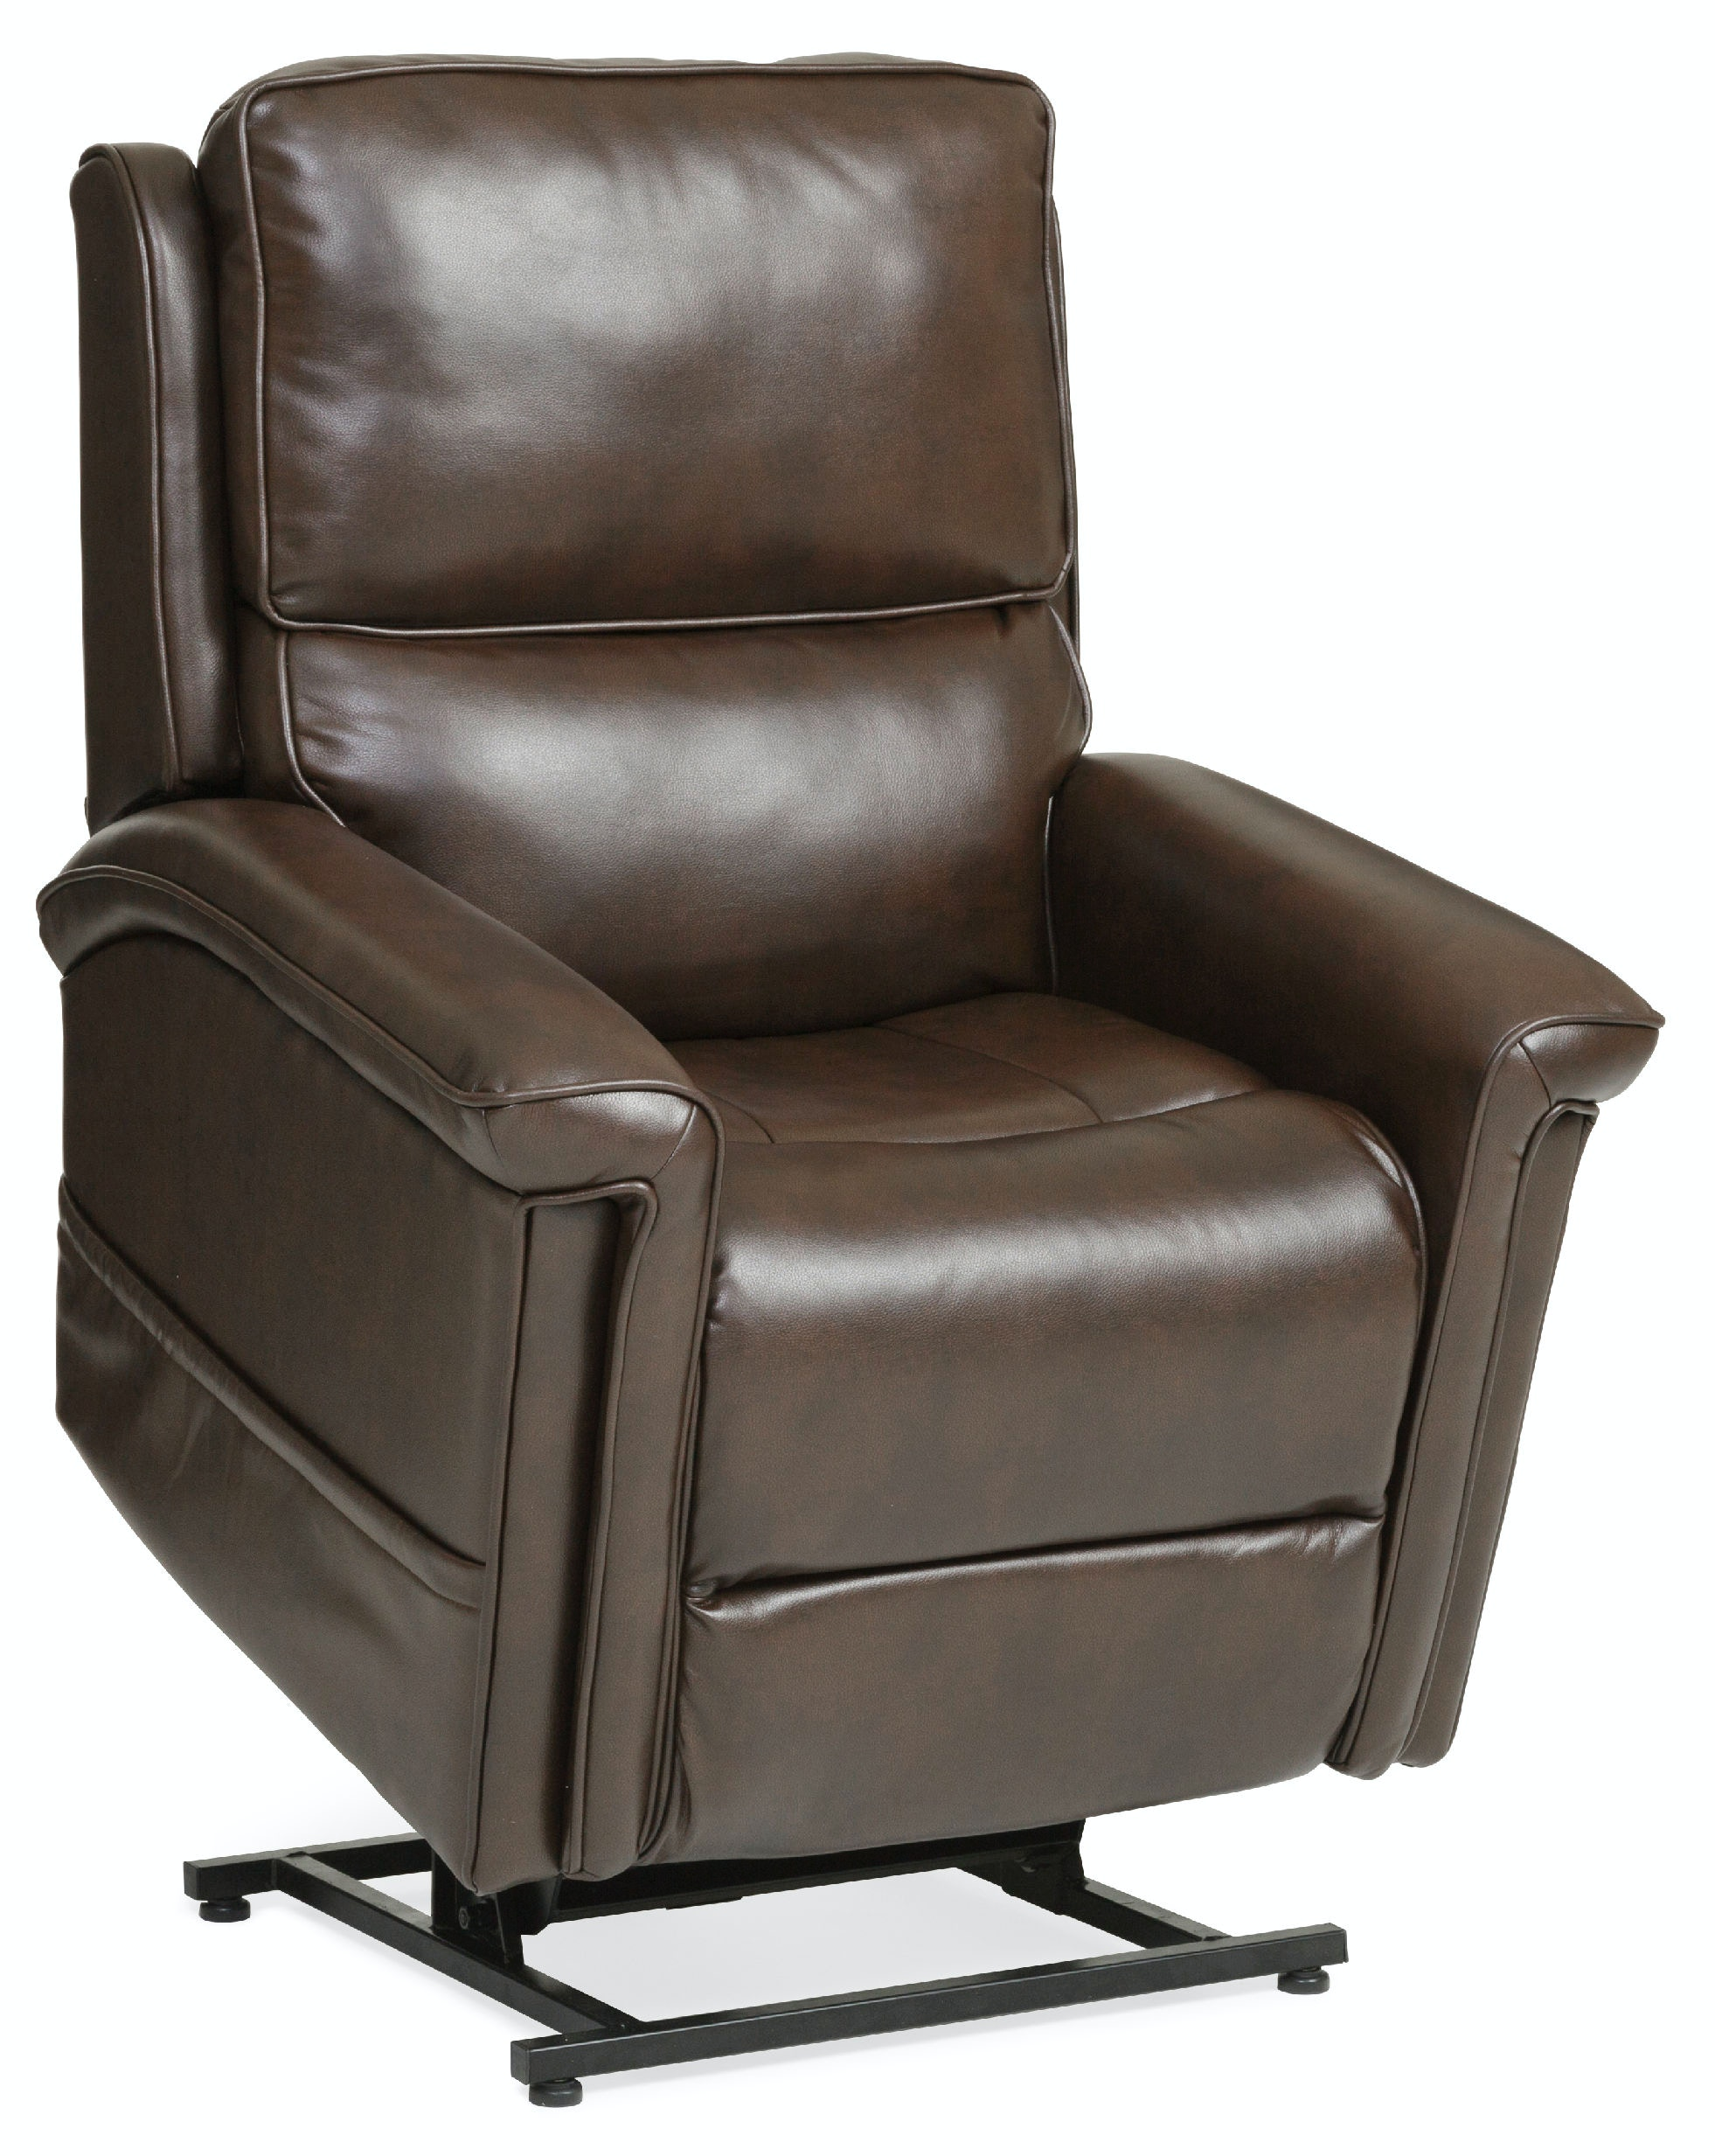 Samantha Power Motion Lift Chair Recliner ST460727  sc 1 st  Star Furniture & Living Room Samantha Power Motion Lift Chair Recliner islam-shia.org